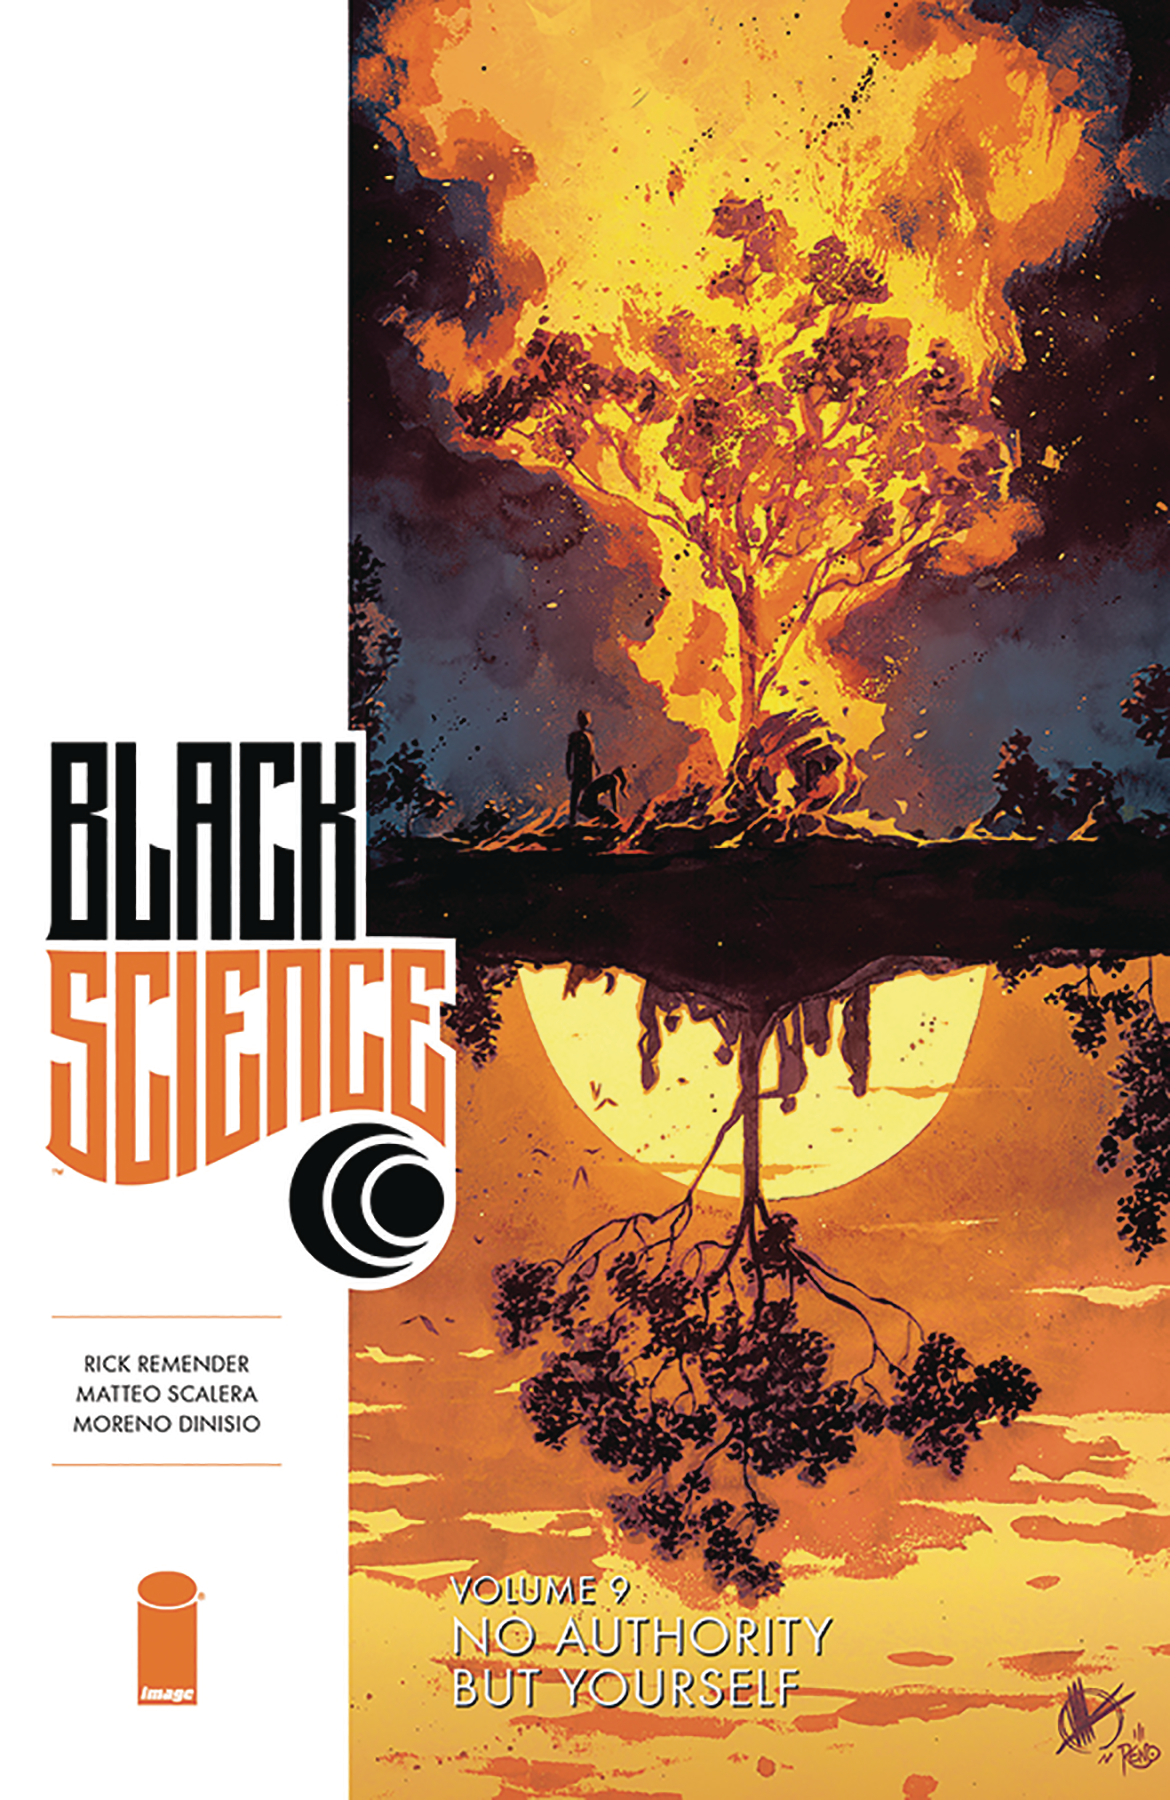 BLACK SCIENCE TP VOL 09 NO AUTHORITY BUT YOURSELF (MR)